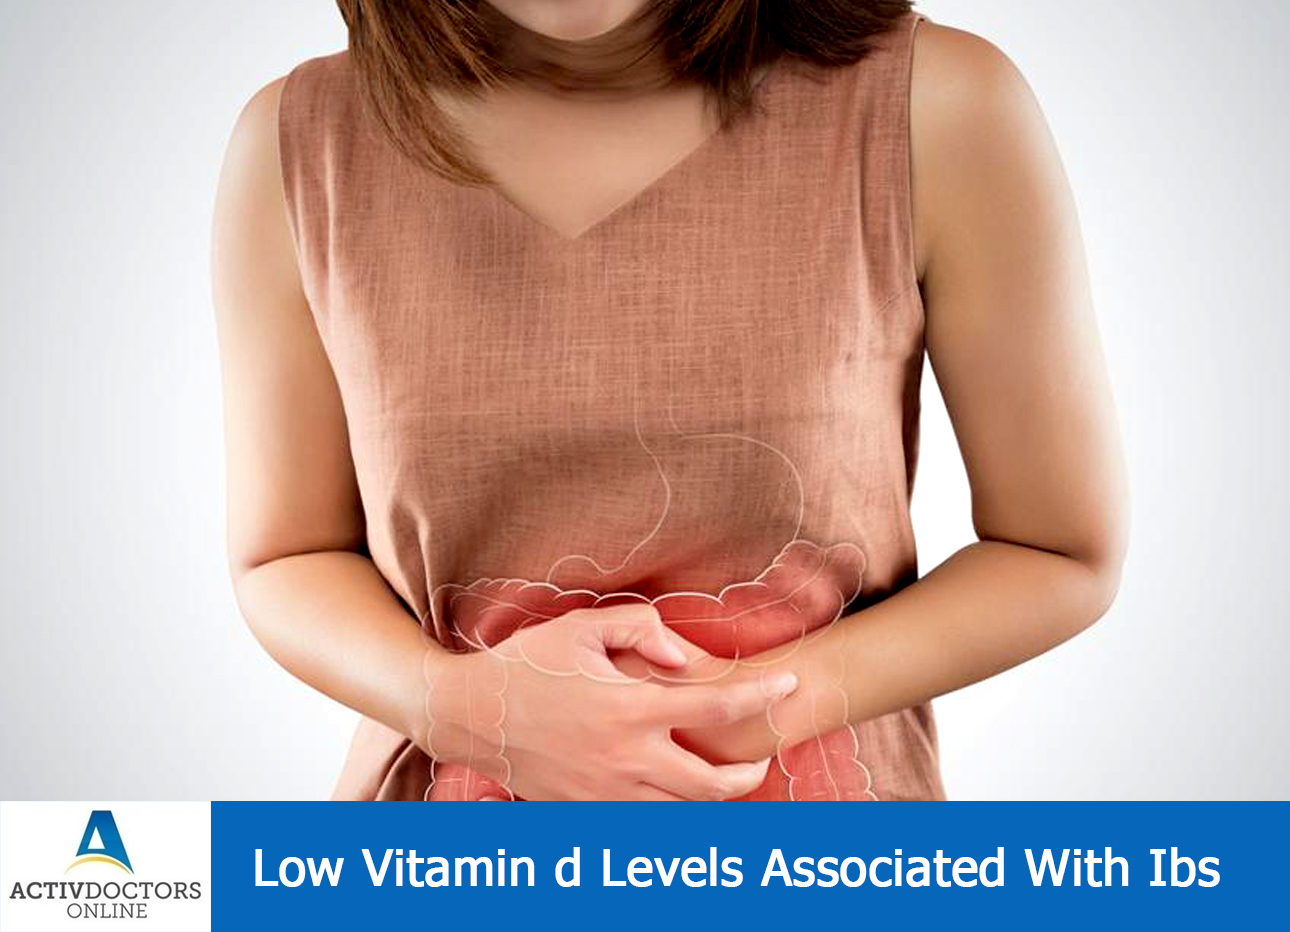 Low Vitamin d Levels Associated With Ibs